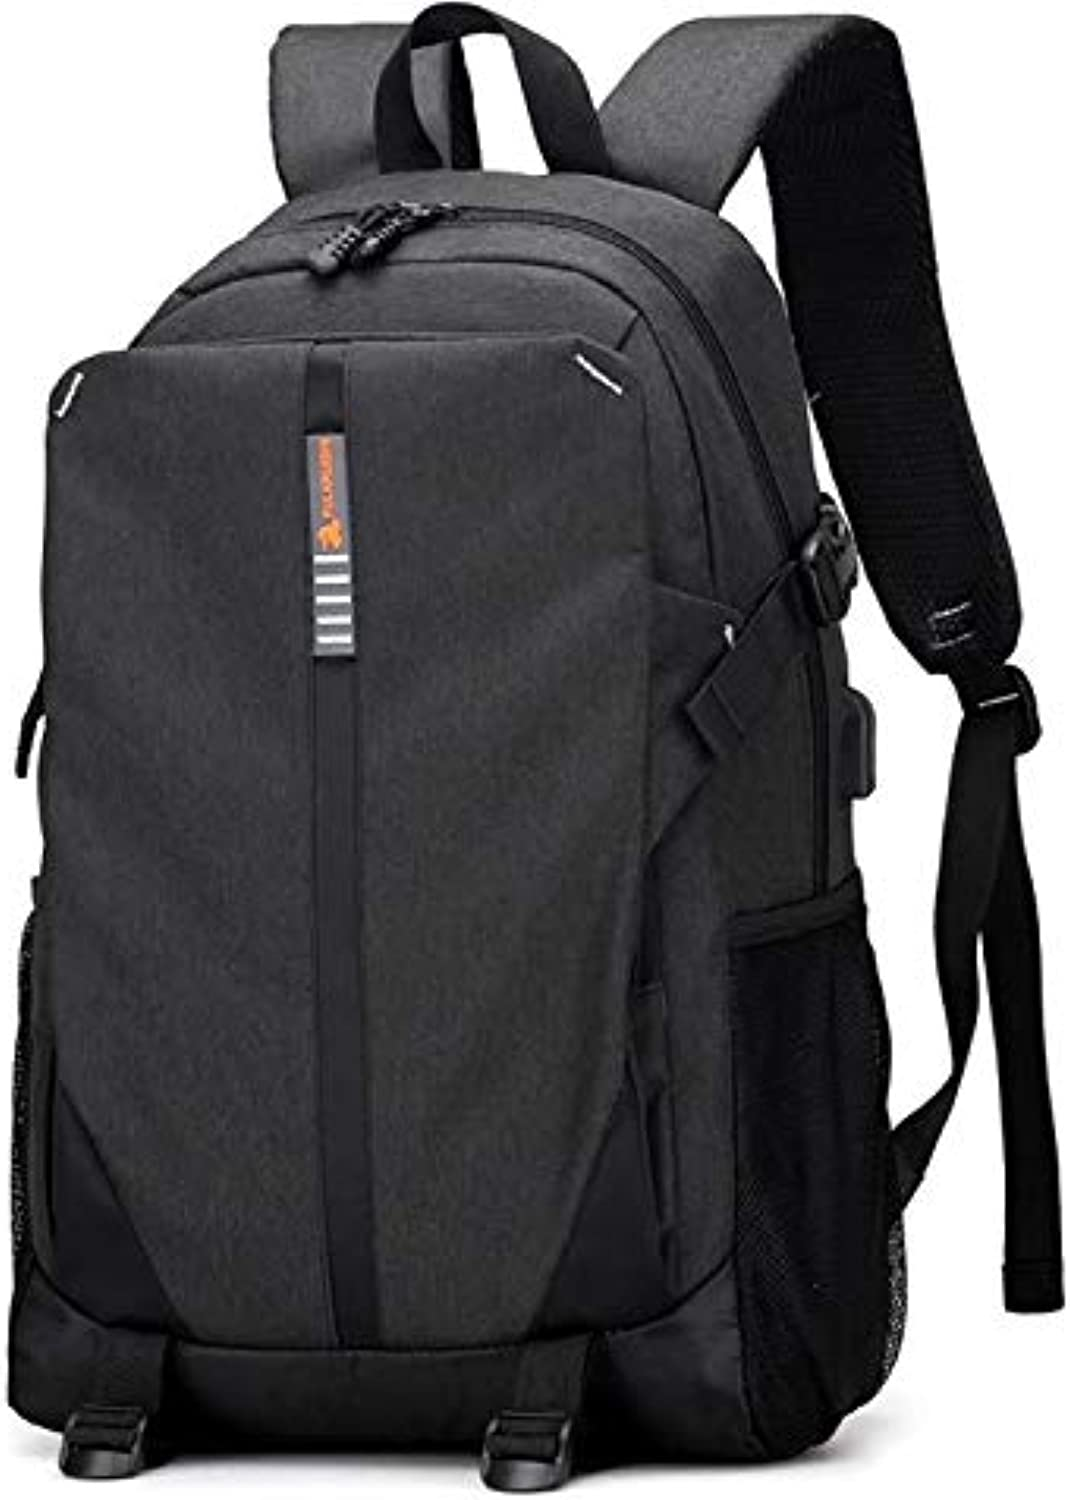 Bjzxz MultiFunction Computer Bag Travel Bag Student Leisure Foreign Trade Backpack Hiking Sports Backpack